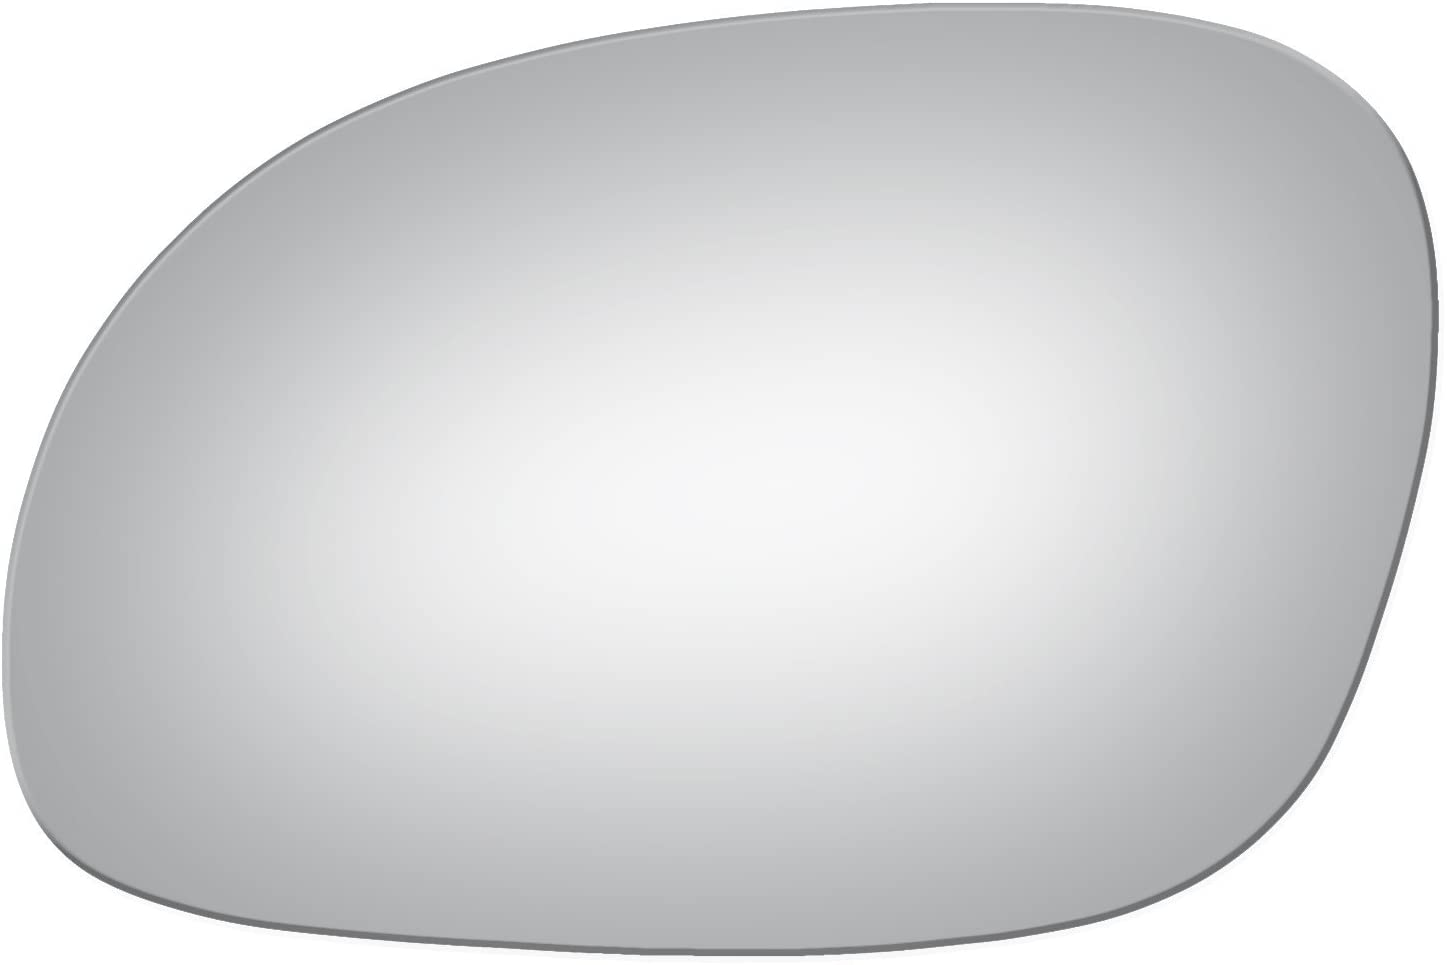 Flat Driver Left Side Replacement for Lin Safety New product! New type and trust 1997-1998 Glass Mirror